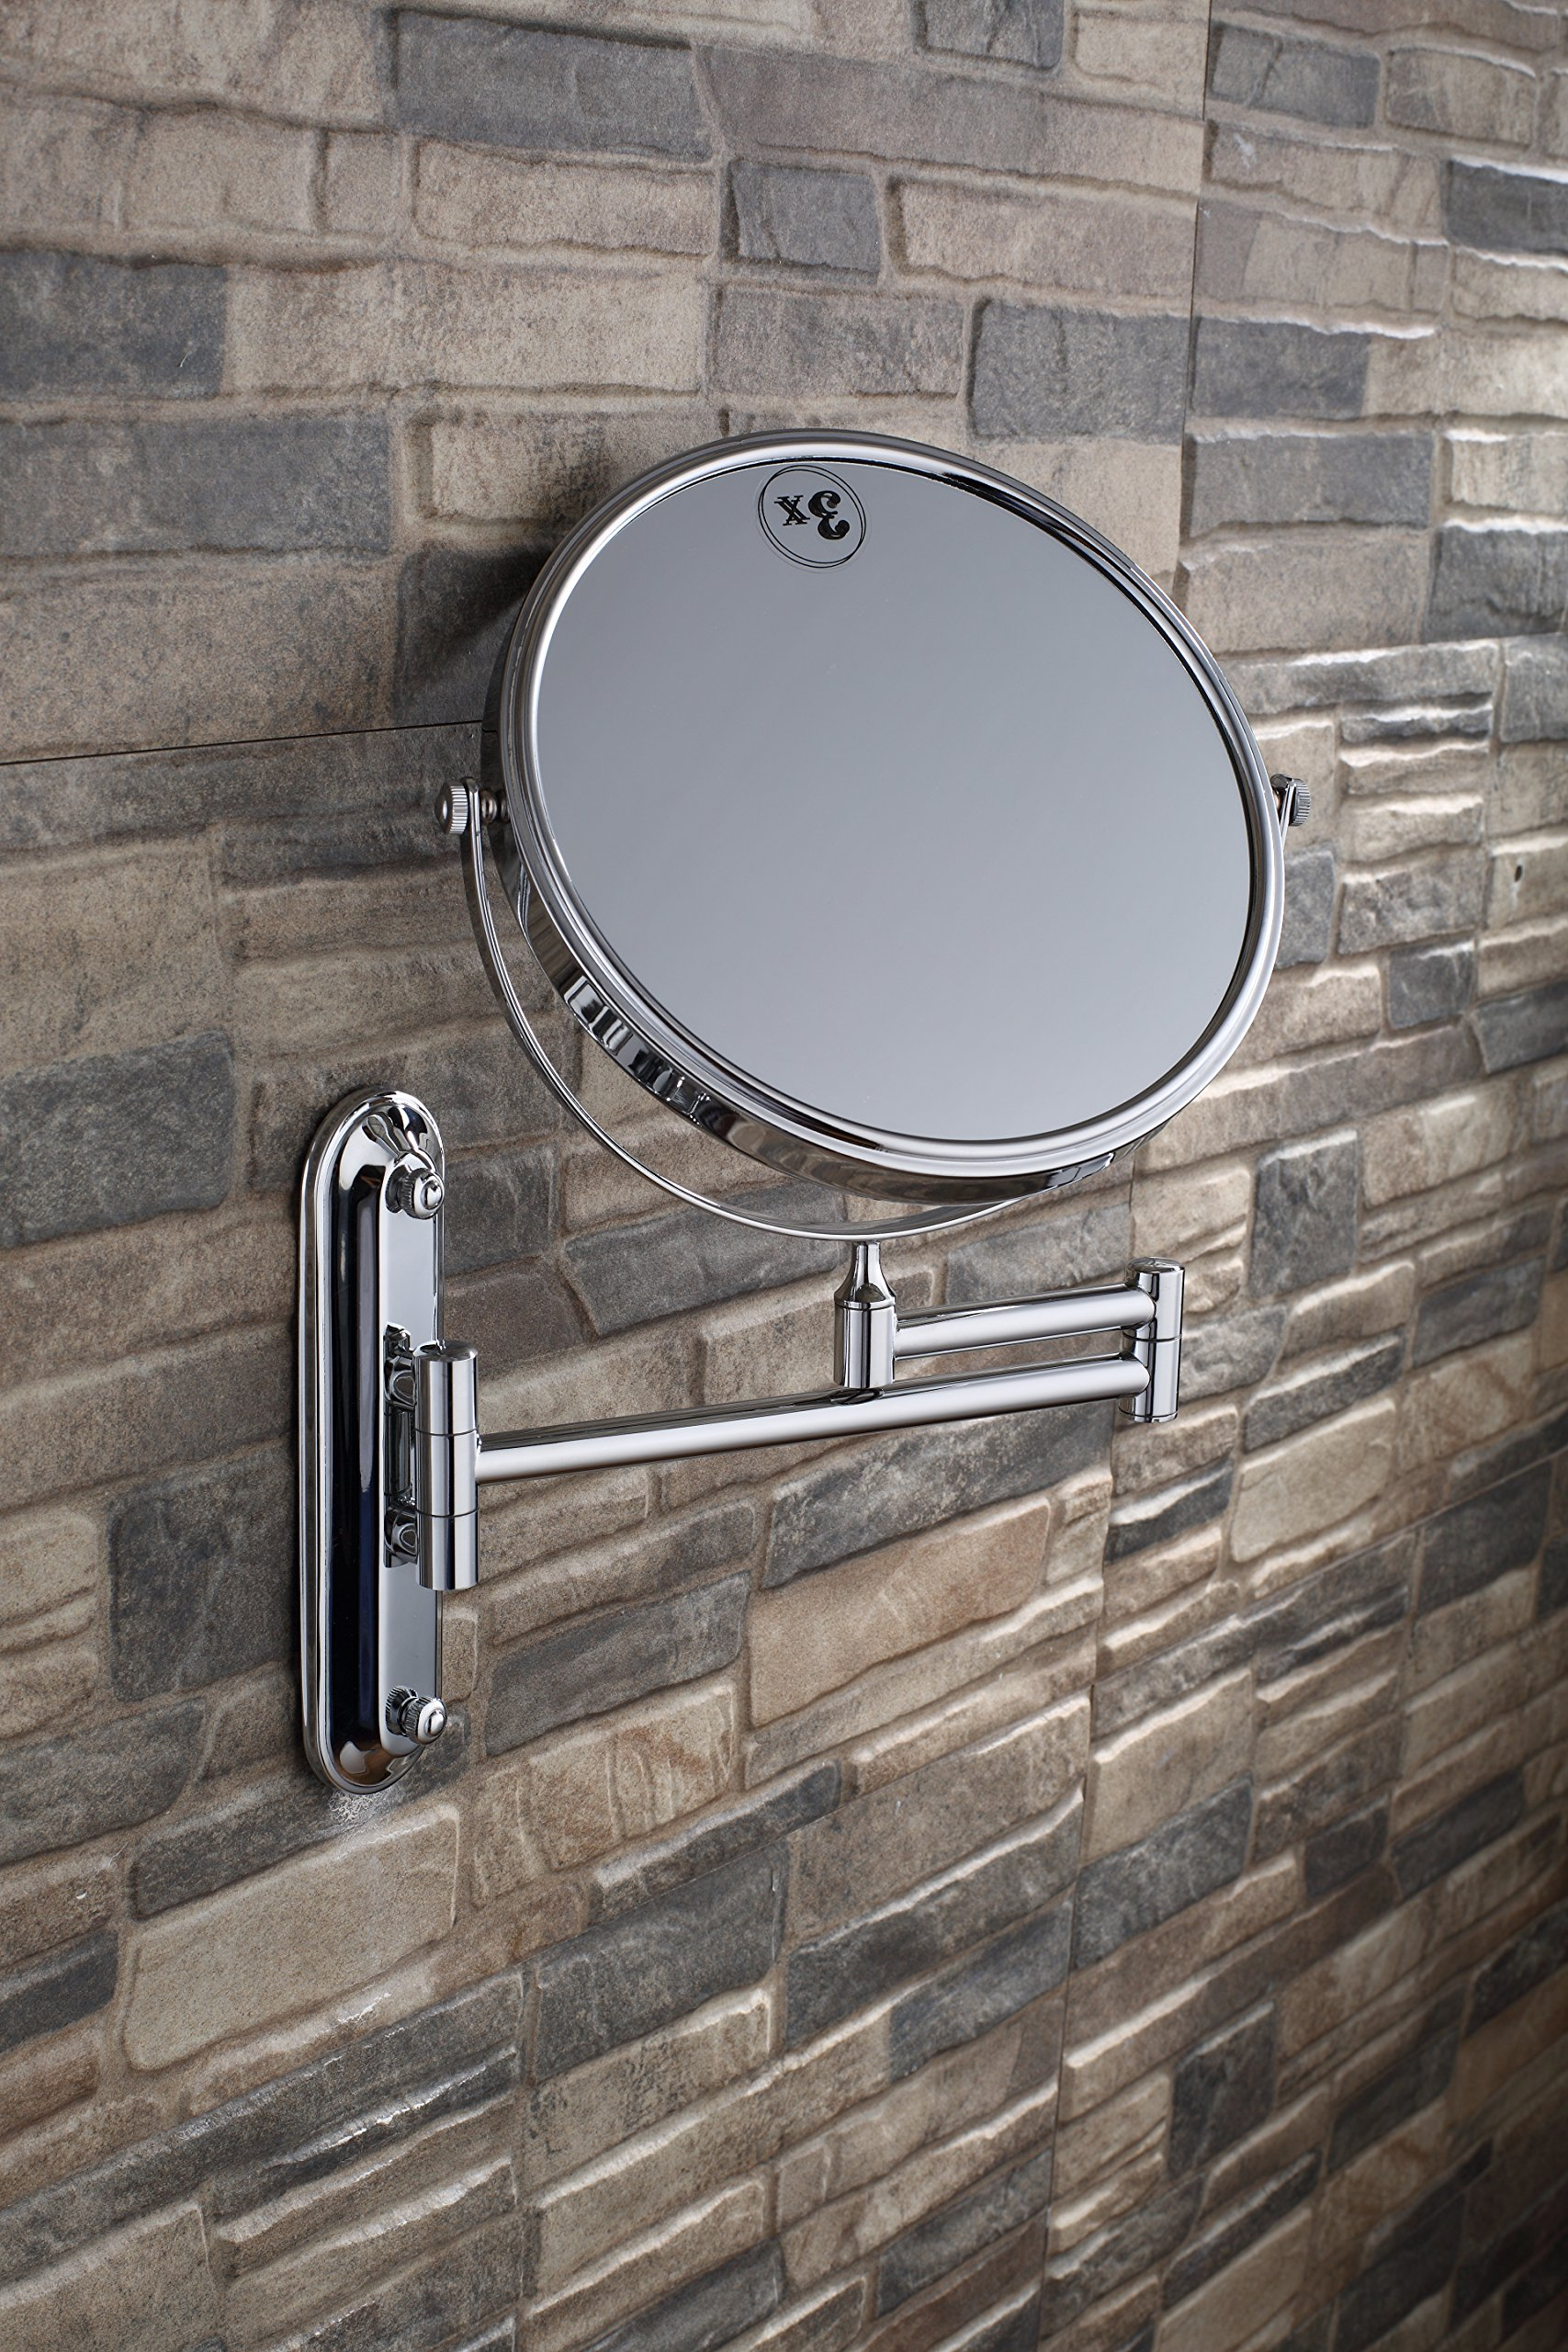 SiKER Beauty Mirror Full Copper Wall-Mounted Vanity Mirror Foldable Rotating Bathroom Three Times magnified Make-up Mirror Eight inches by SiKER (Image #3)